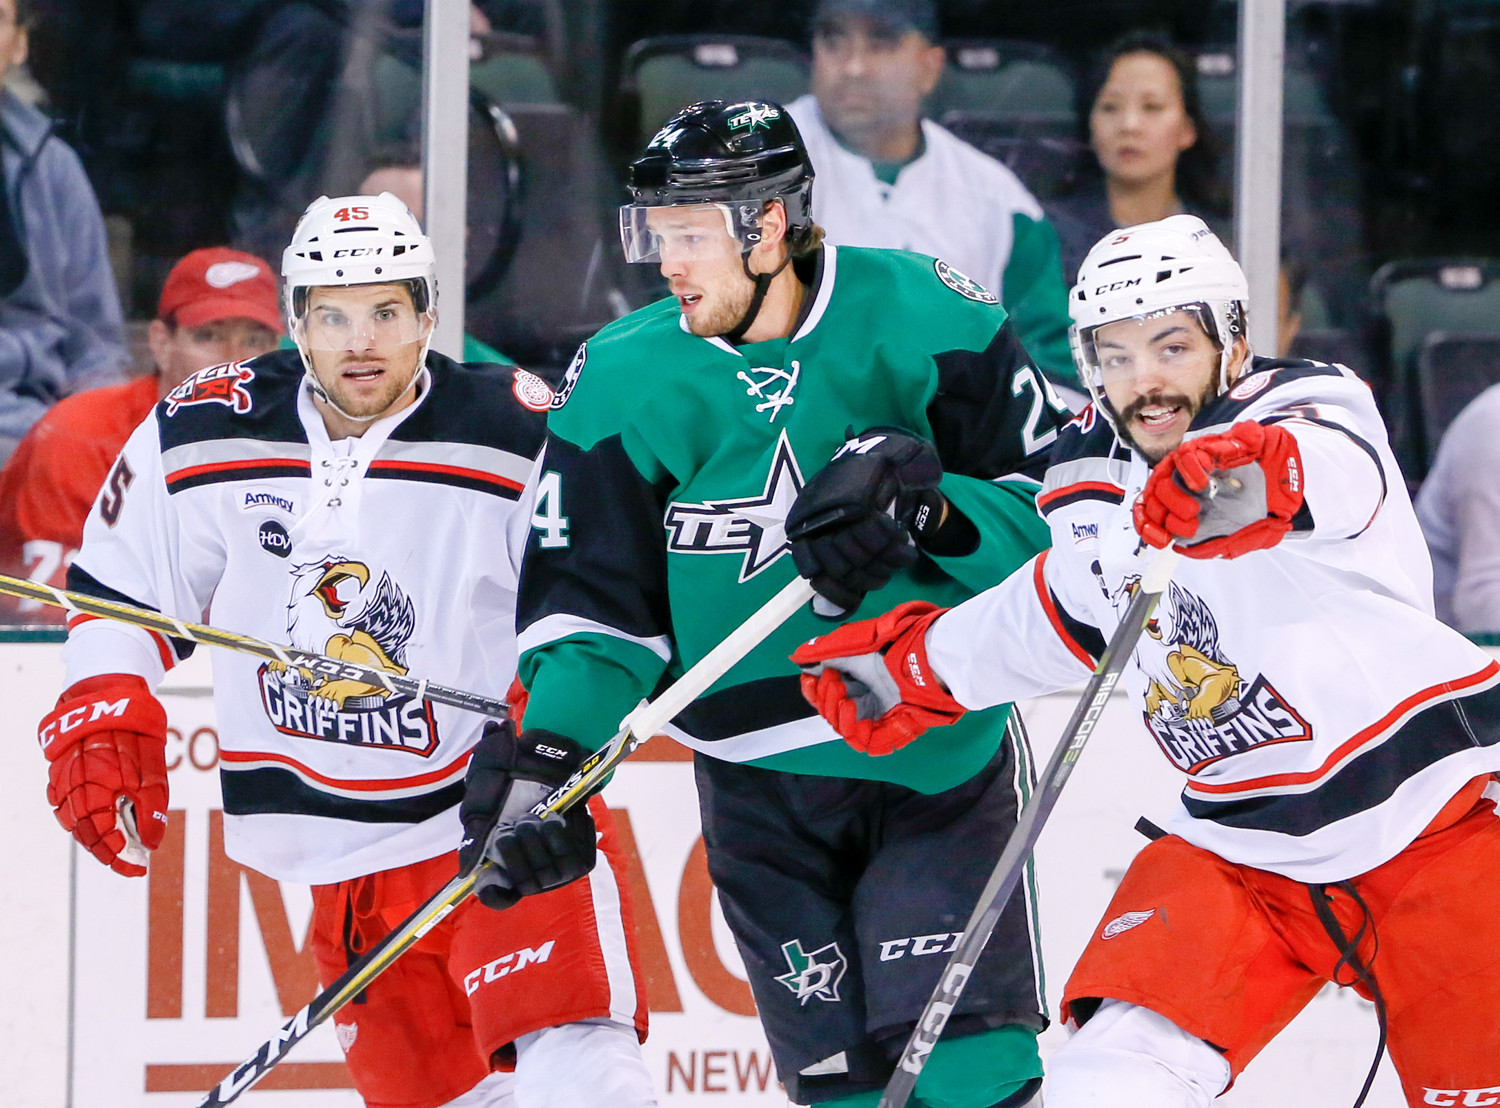 The Texas Stars will begin the 2018-19 AHL season on Friday, Oct. 5 against the Grand Rapids Griffins and will have 38 regular season games at HEB this season.